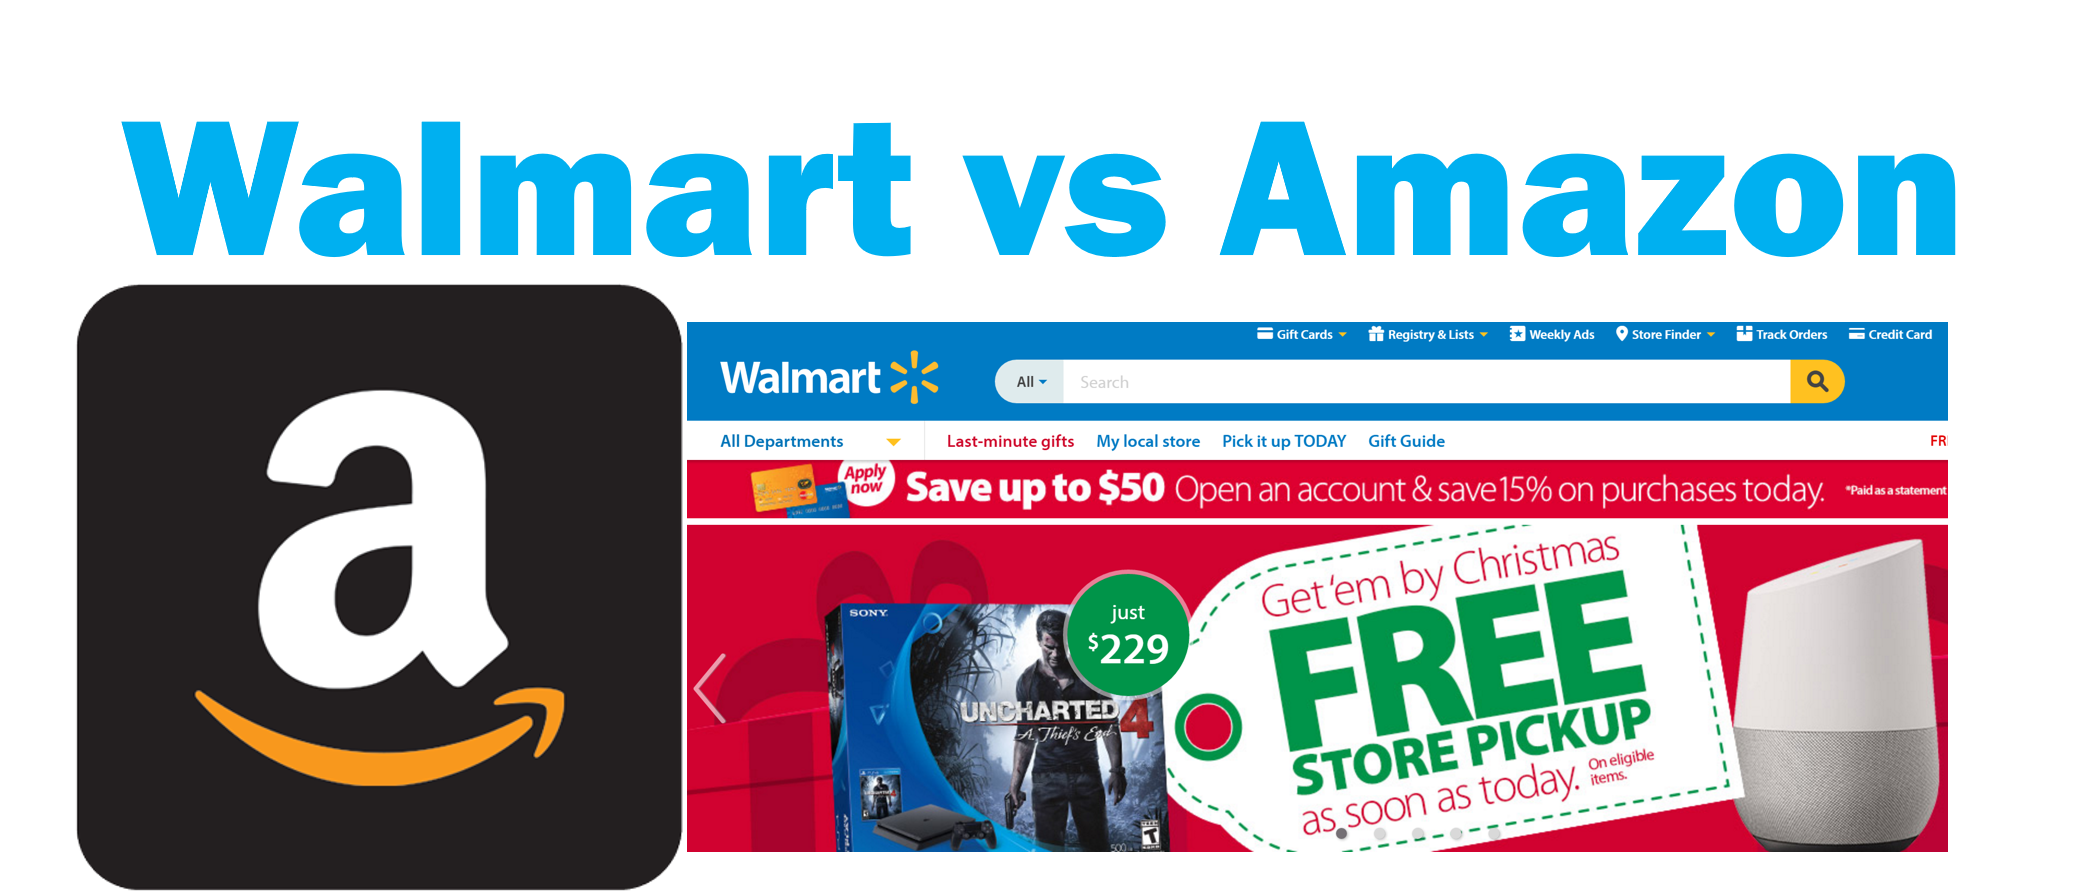 Number of products sold on Walmart.com vs Amazon.com – December 2016